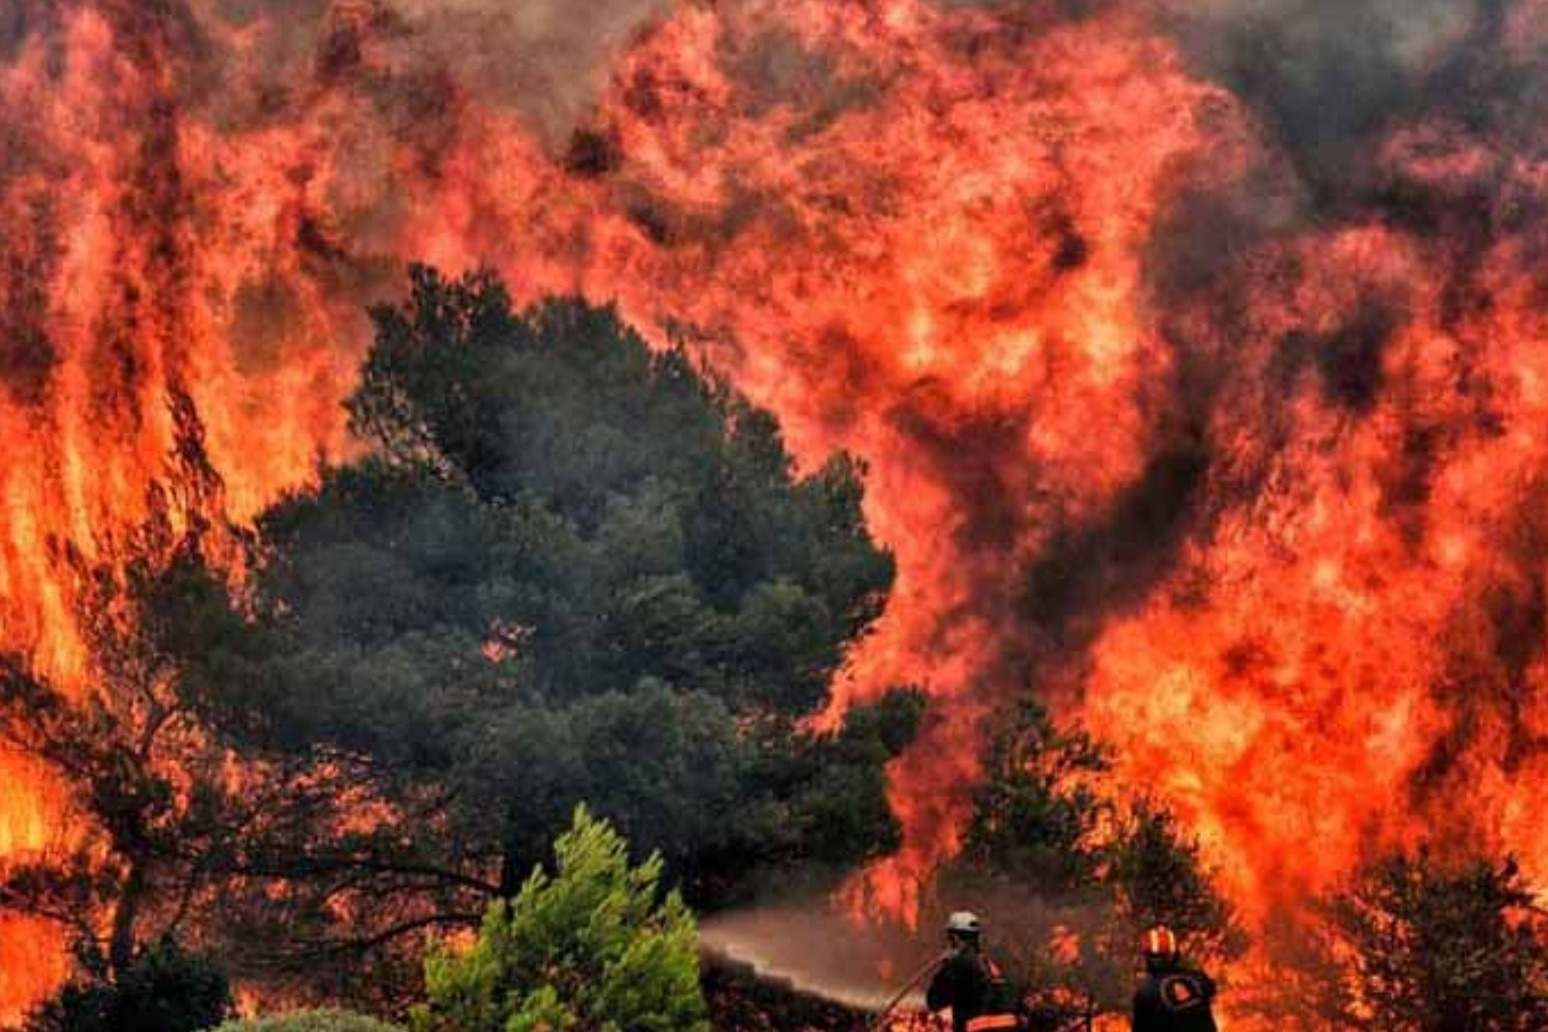 British teams sent to Greece to help tackle wildfires.